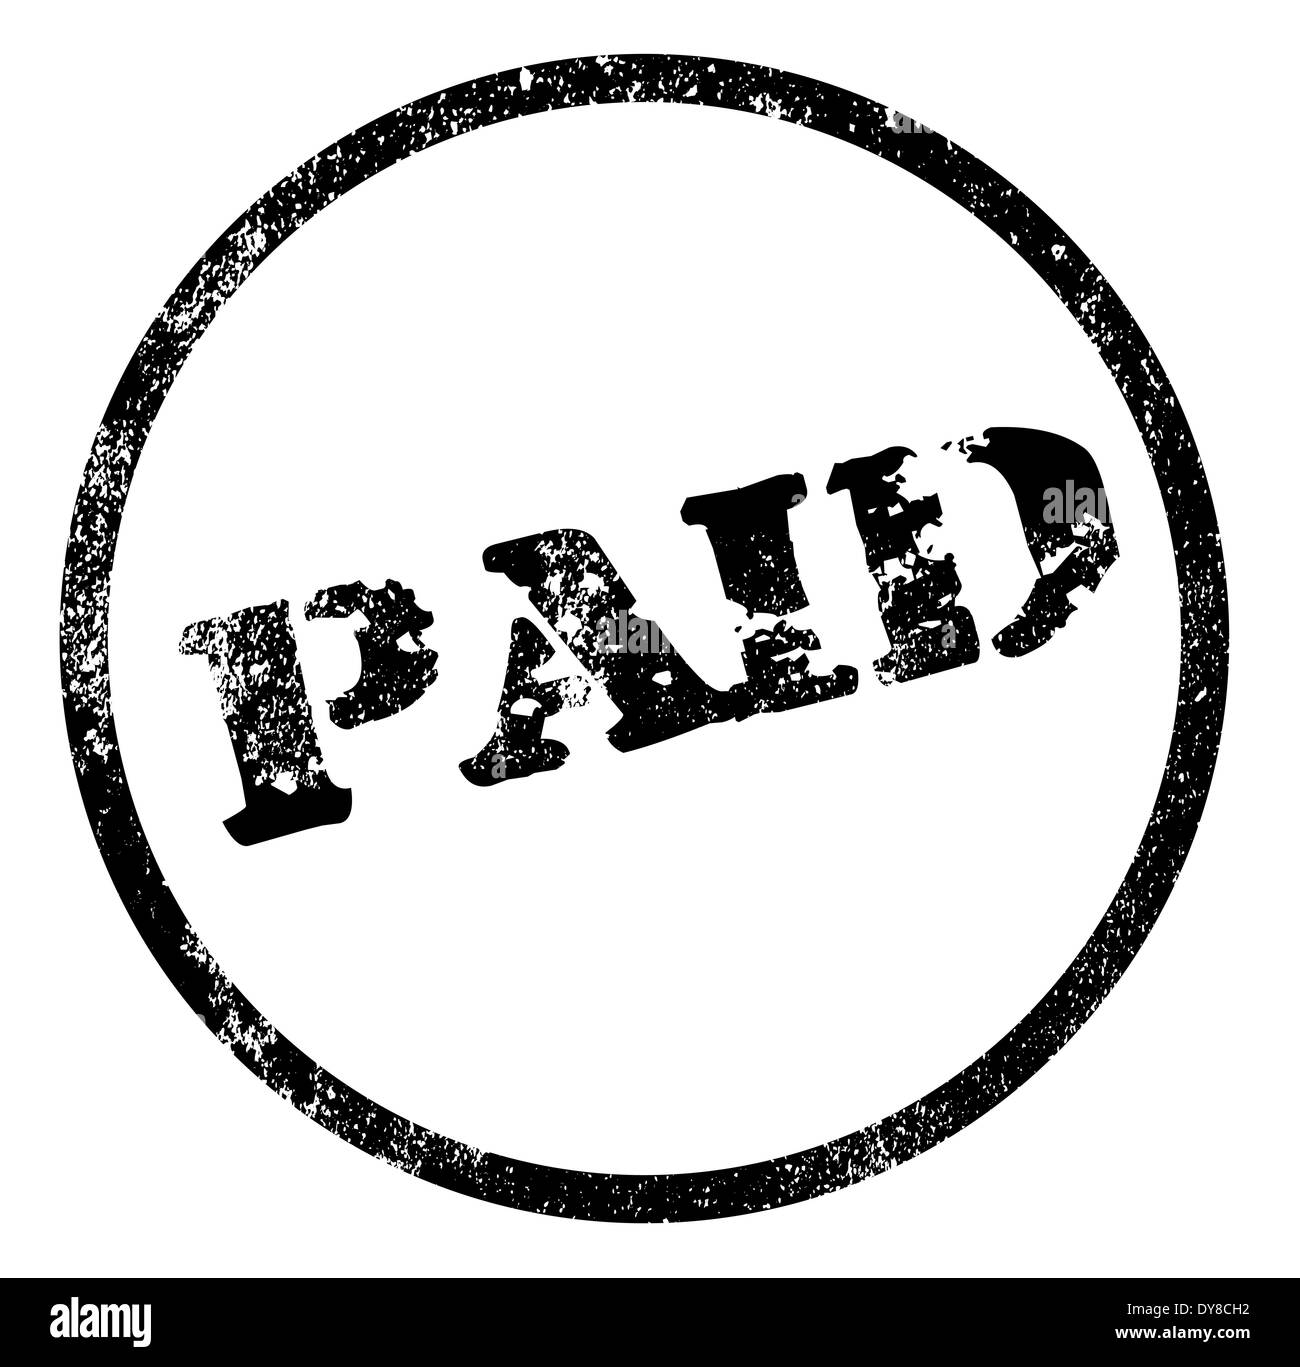 A Paid Rubber Stamp Impression Isolated Over White Background